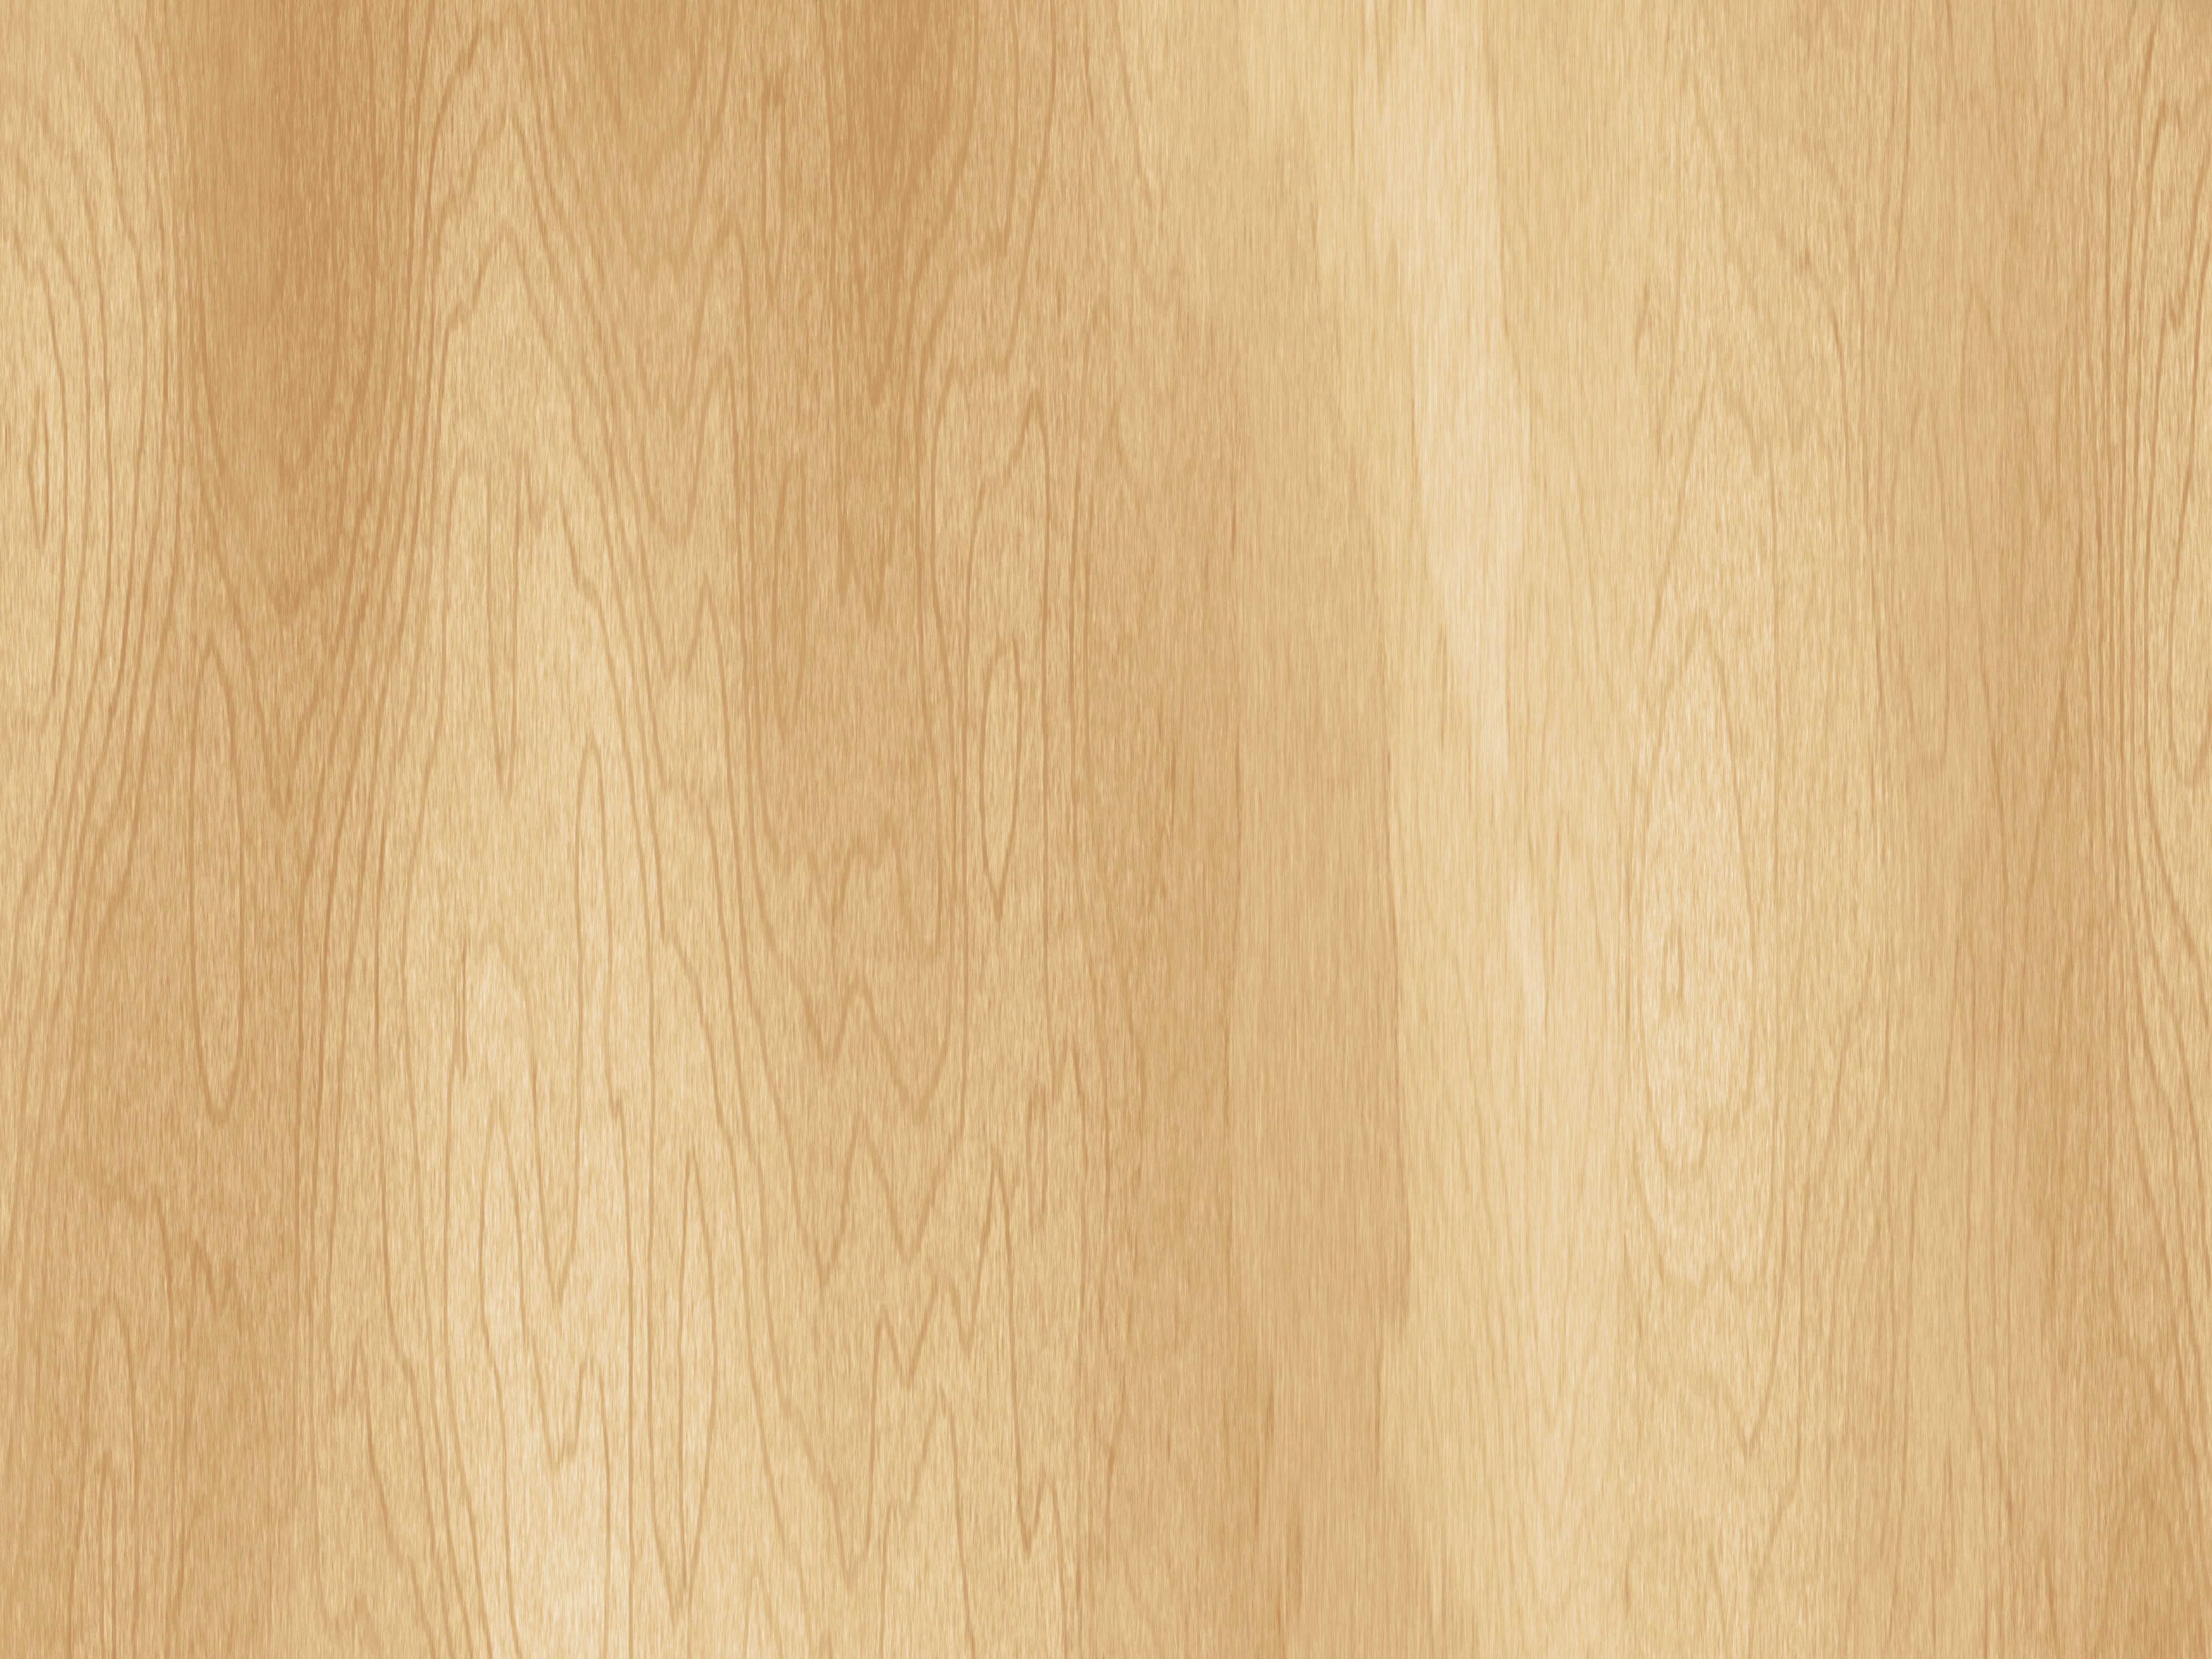 Bamboo Wood Background Download texture: wood texture